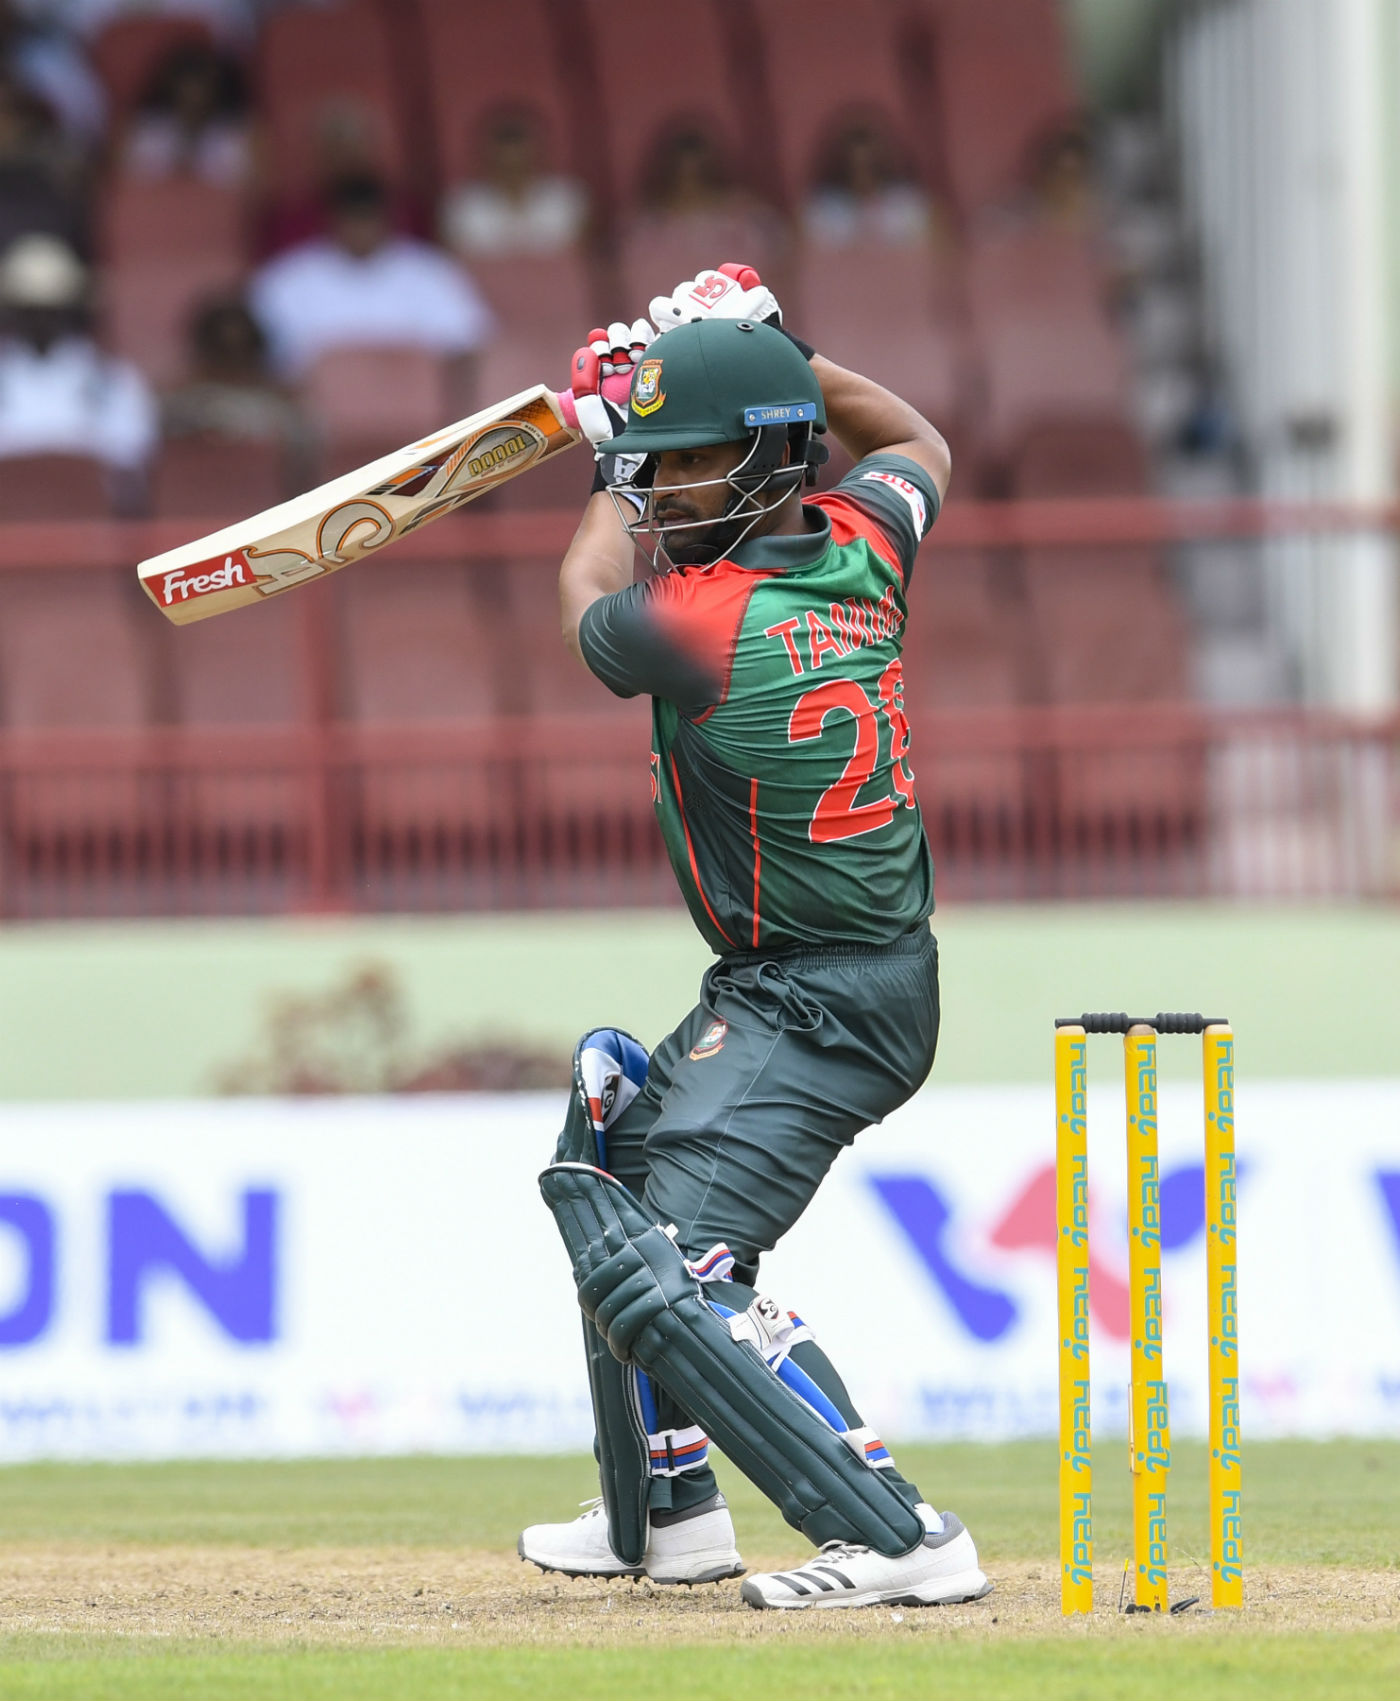 Asia Cup 2018: I Felt Very Brave In Those Ten Seconds When The Bowler Was Running In: Tamim Iqbal